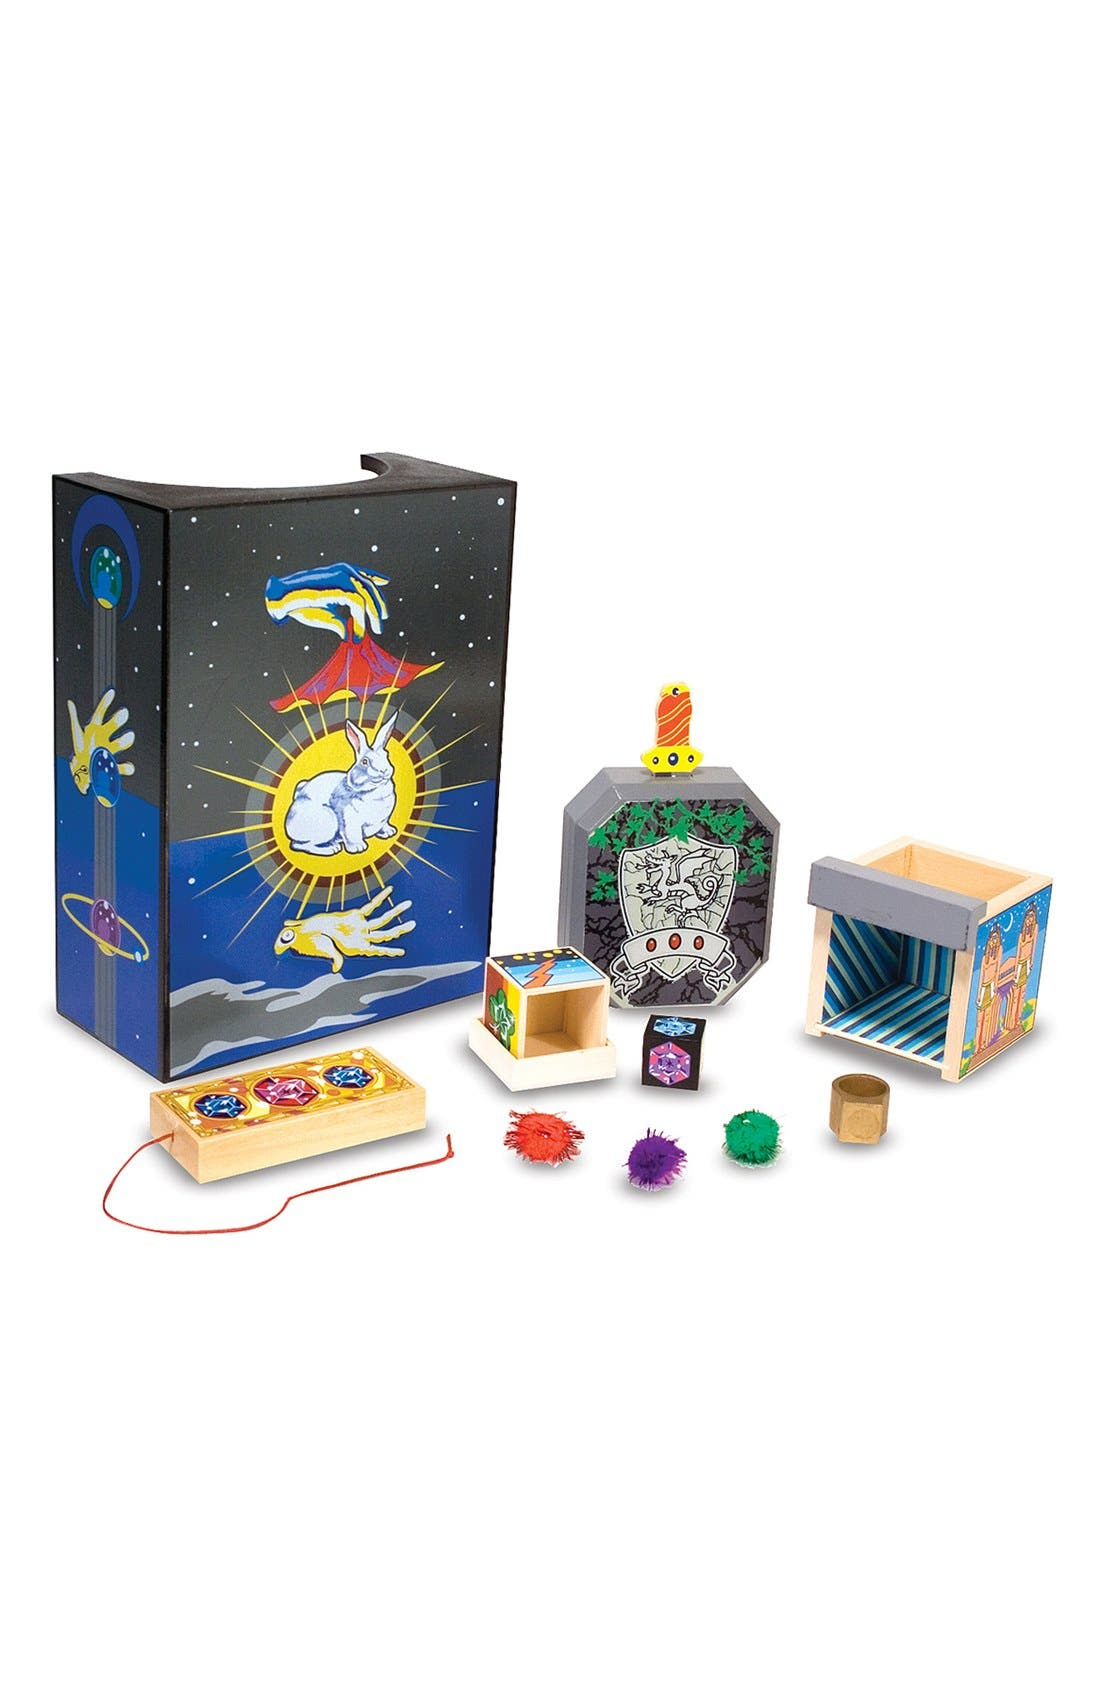 Melissa & Doug 'Discovery' Magic Set